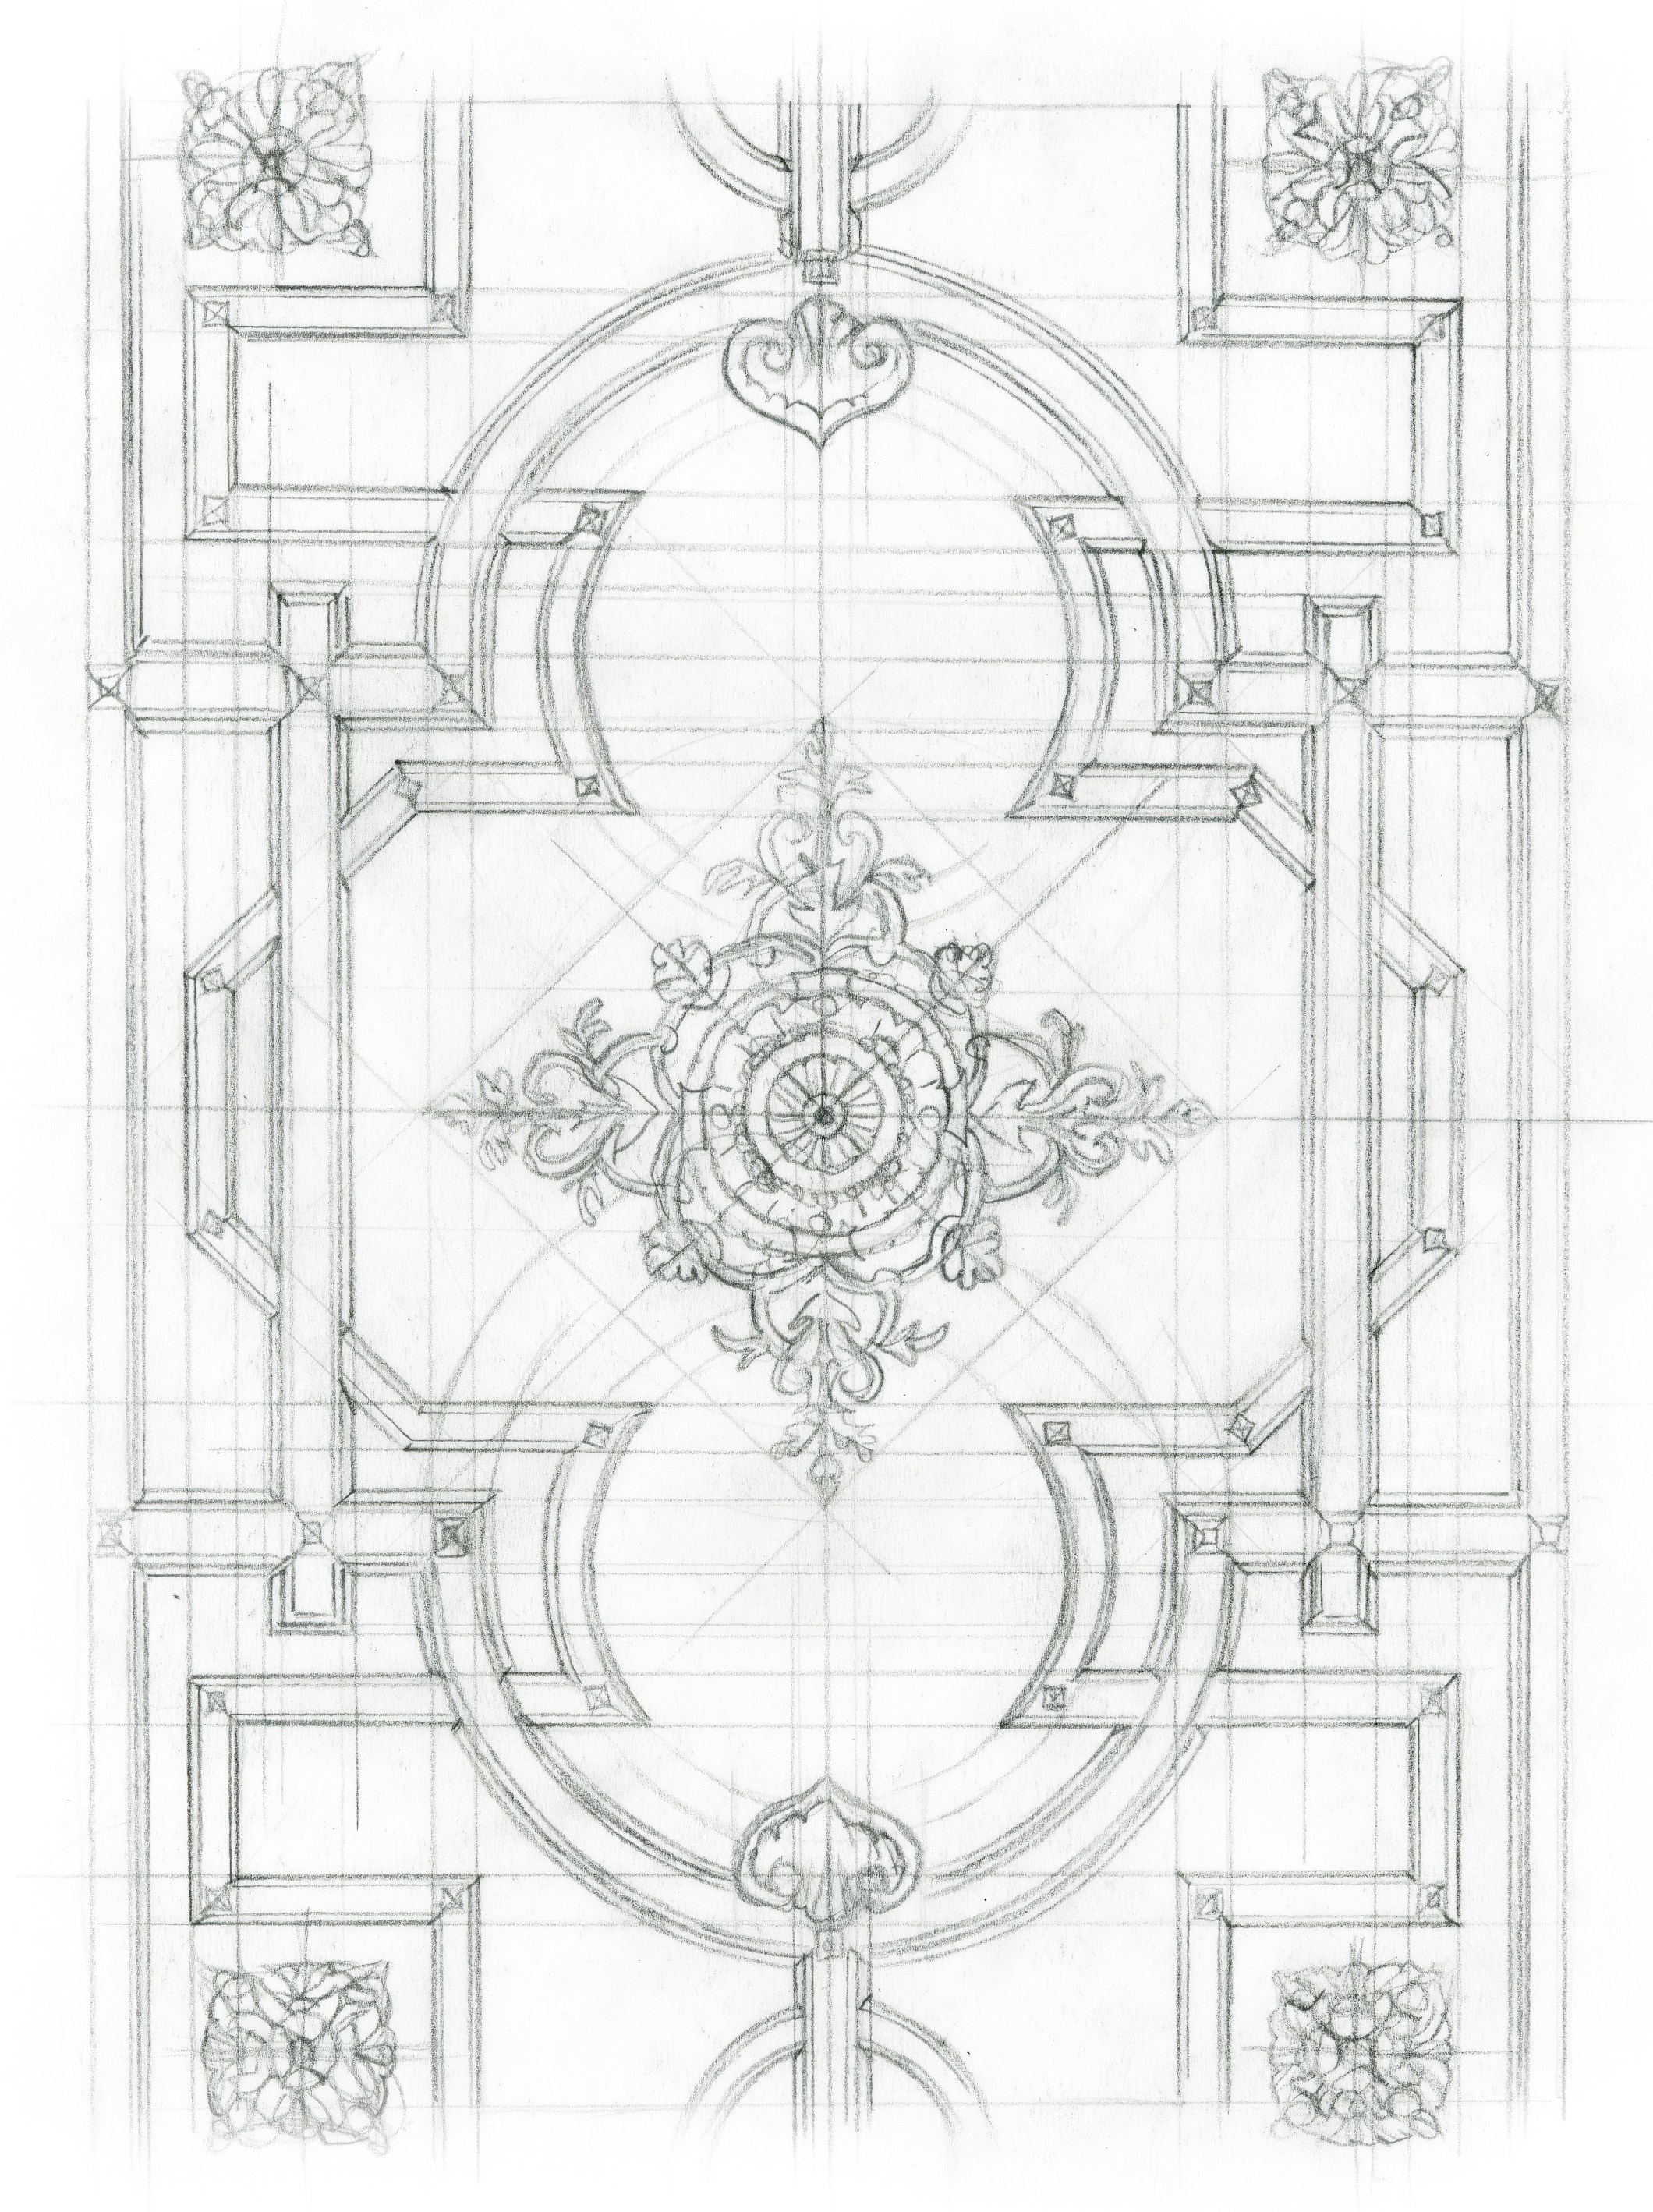 Ceiling Rough Sketch - 01